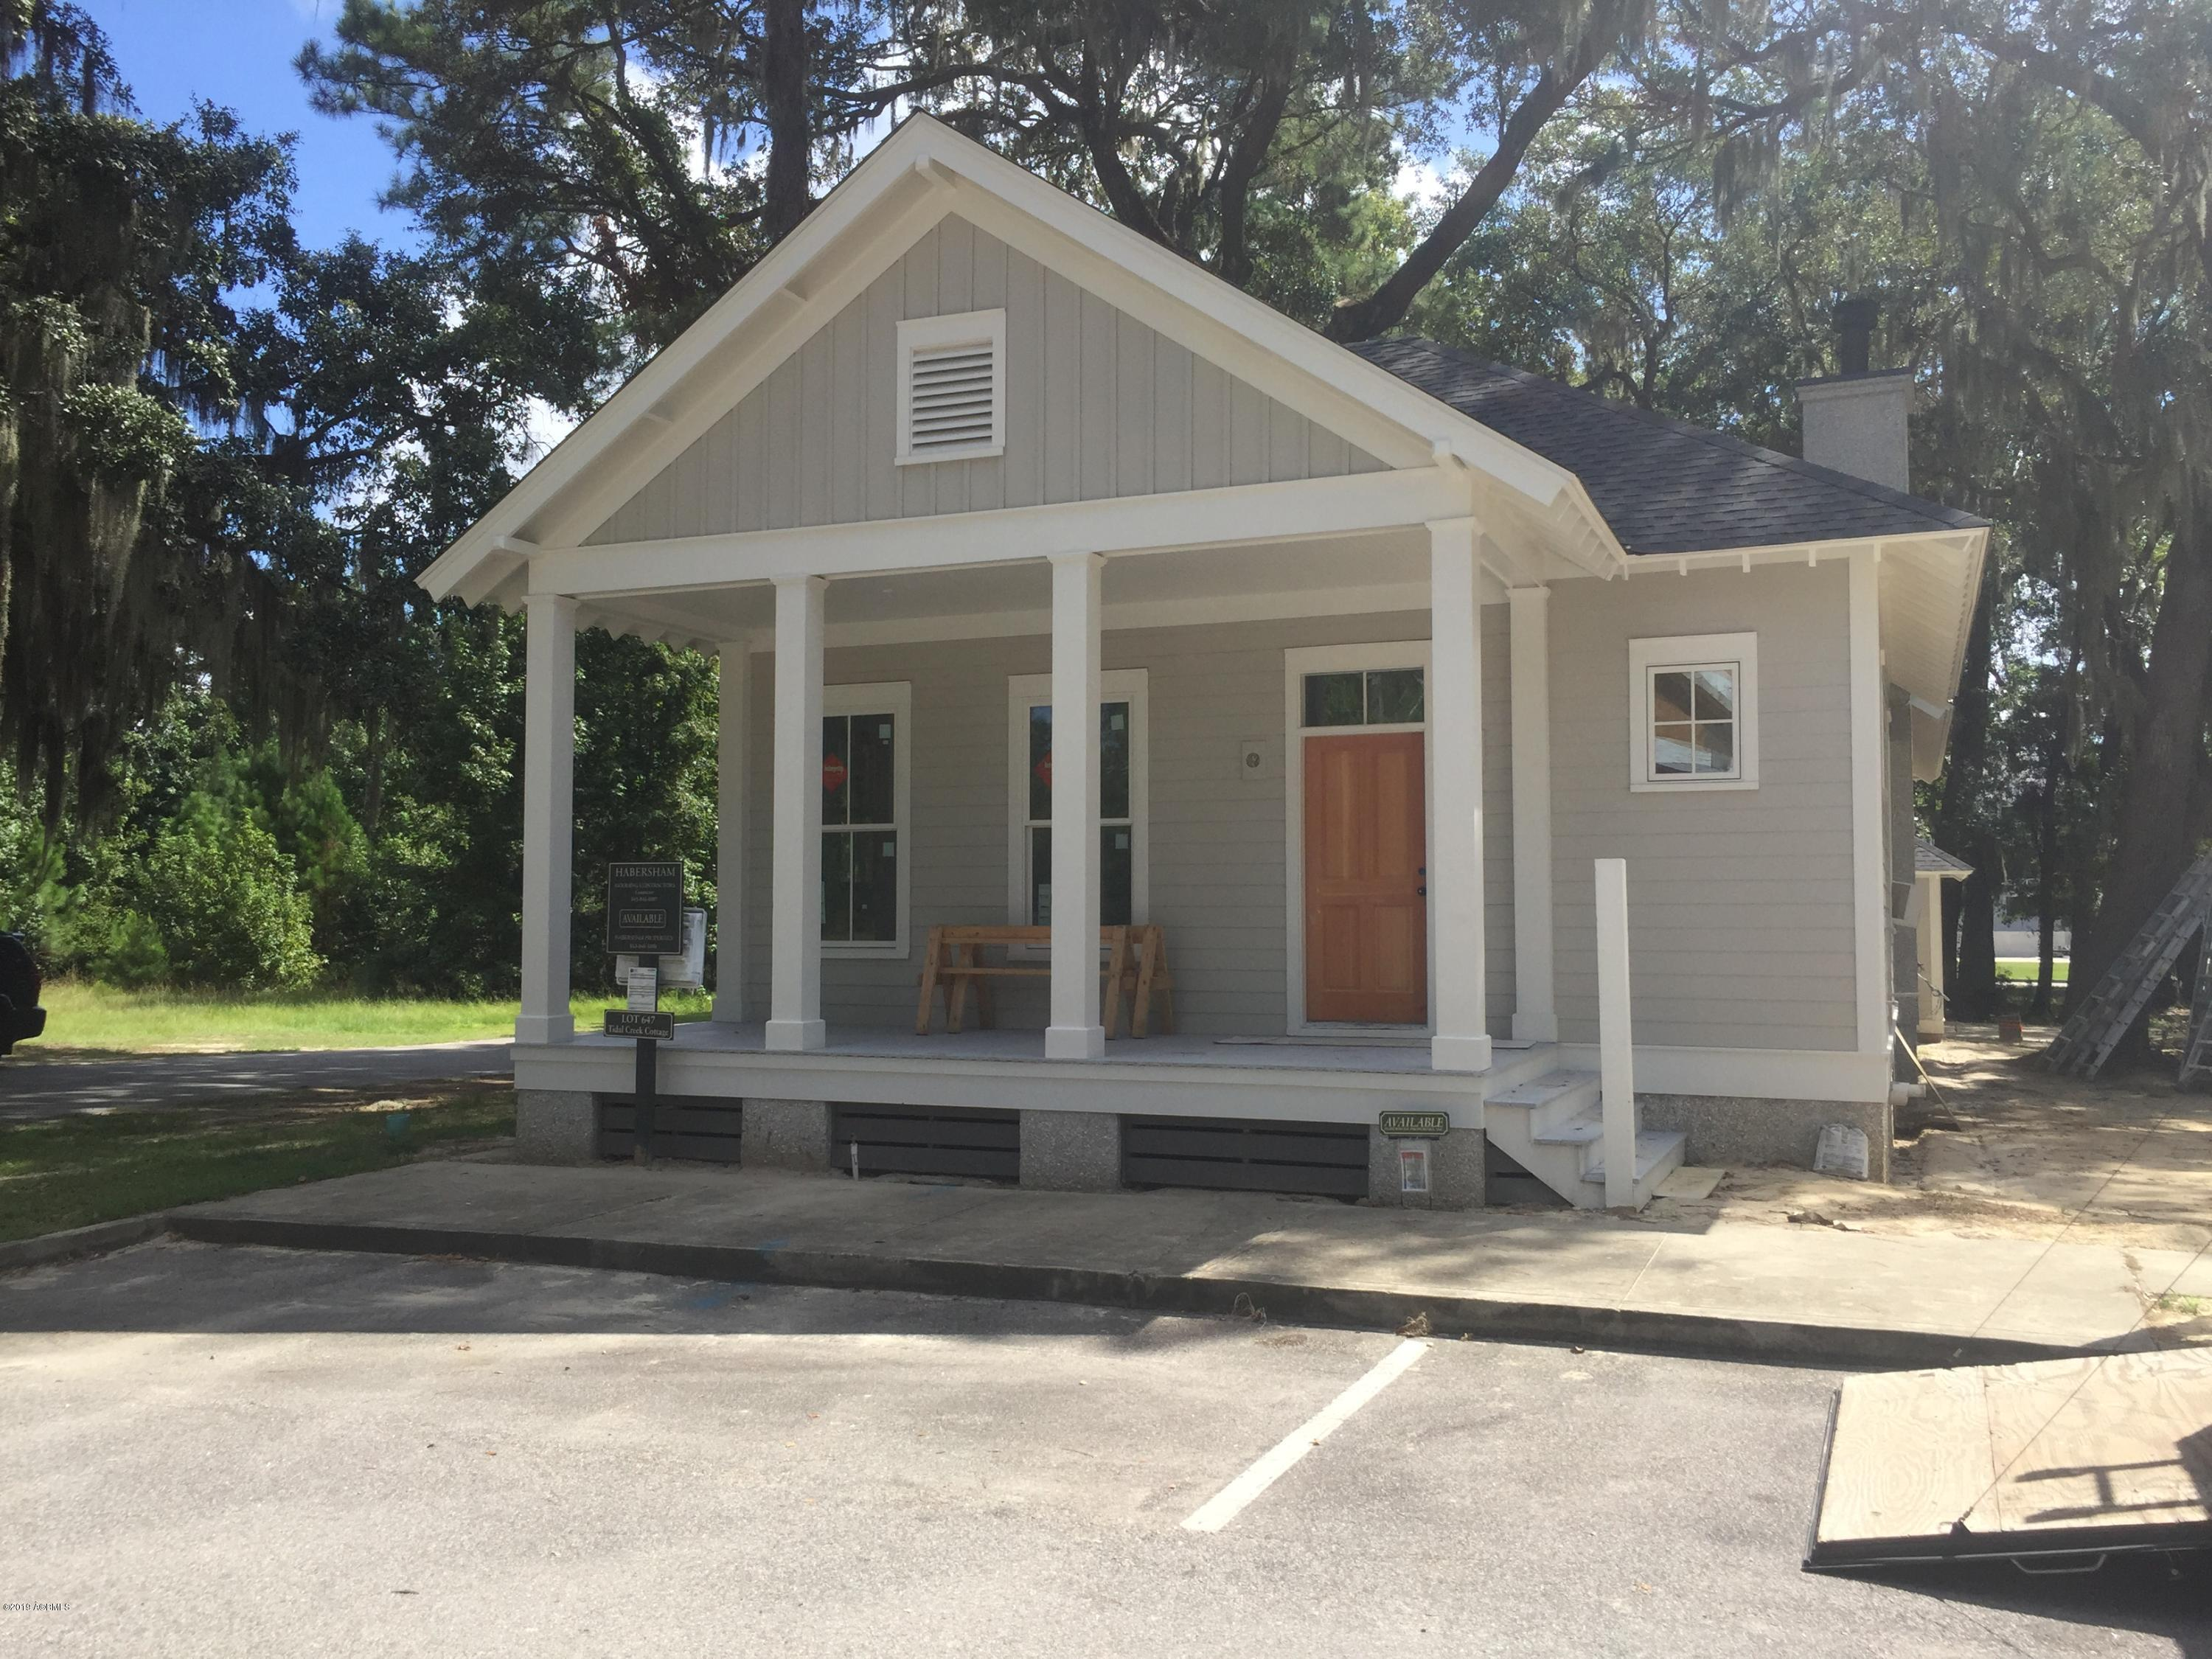 Photo of 1 Hamlet Row, Beaufort, SC 29906